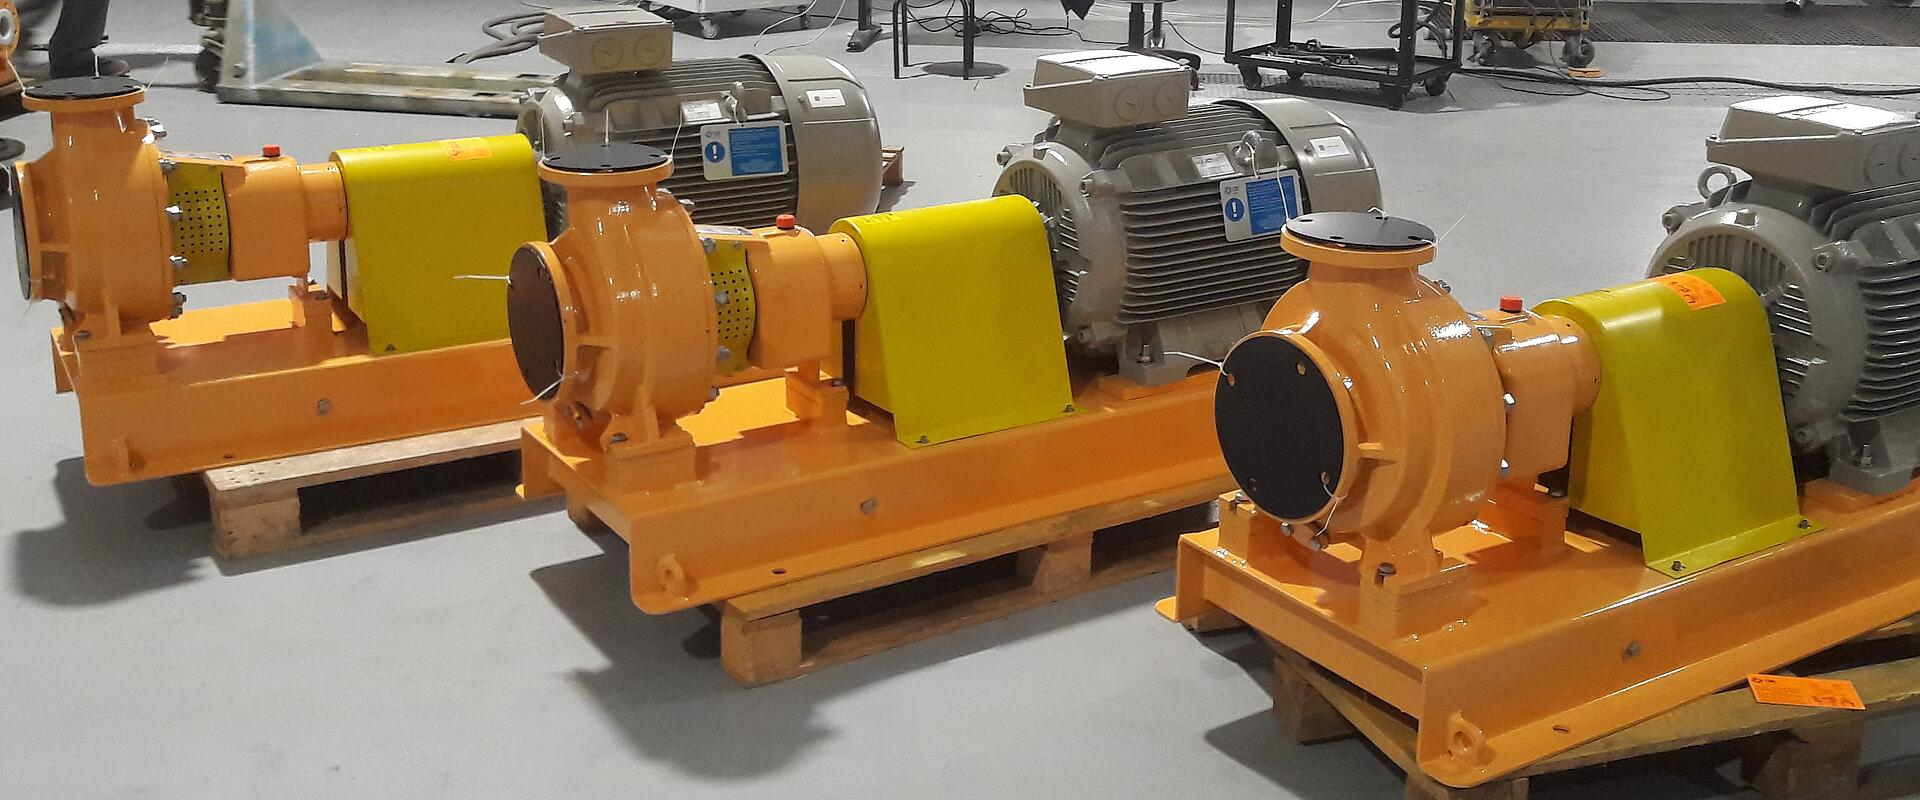 Pumps and Compressors C.D.R. by KTR Systems GmbH